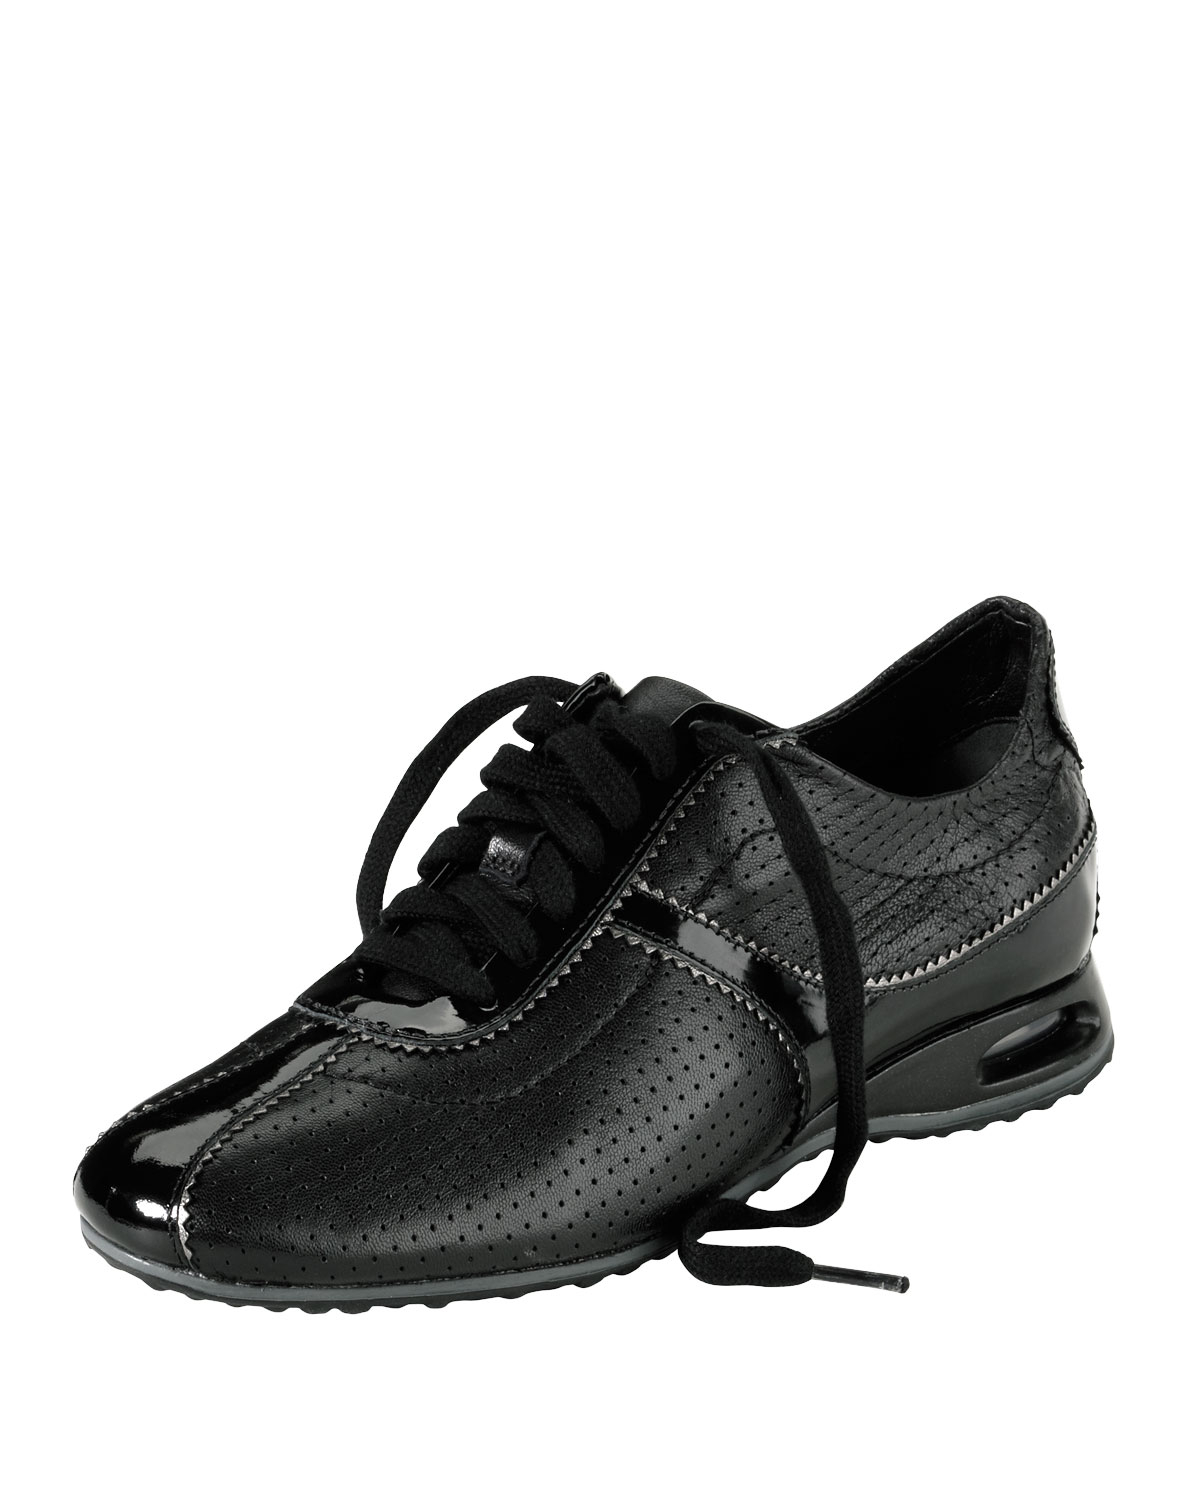 Cole Haan Air Bria Perforated Oxford Sneaker In Black Lyst